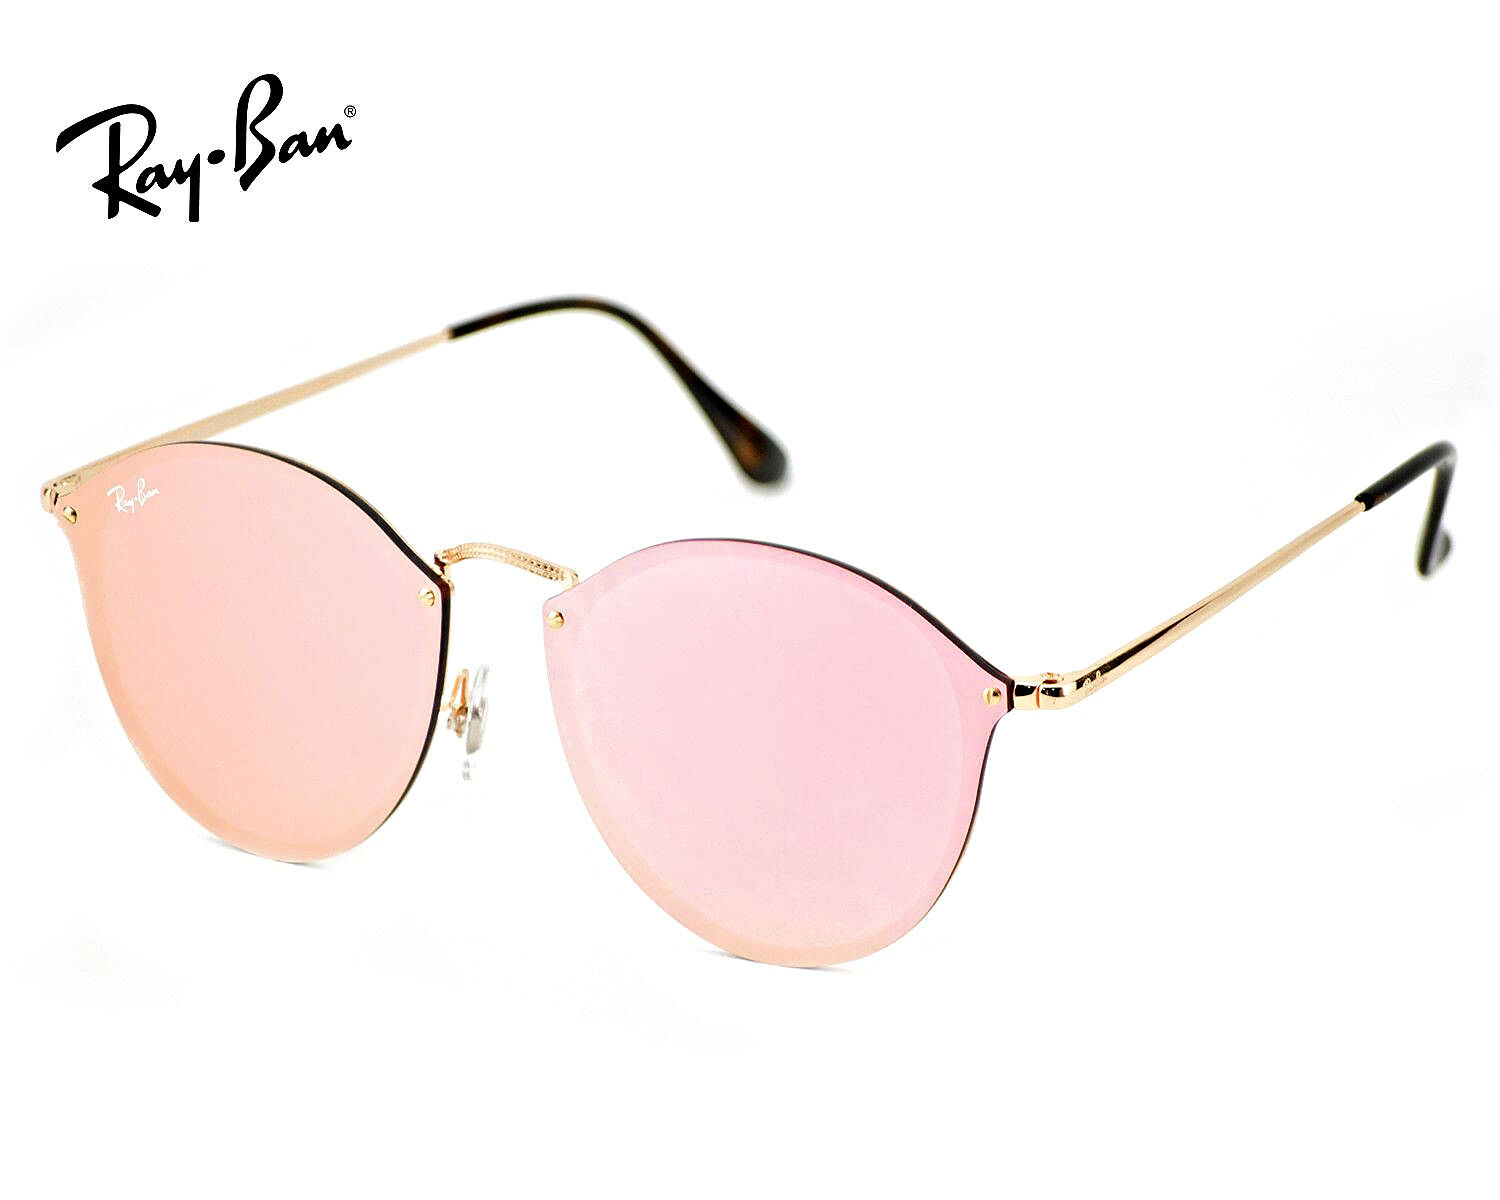 RAY-BAN RB3574N BLAZE Round 001/E4 Gold Frame/Pink Mirror Lenses ...